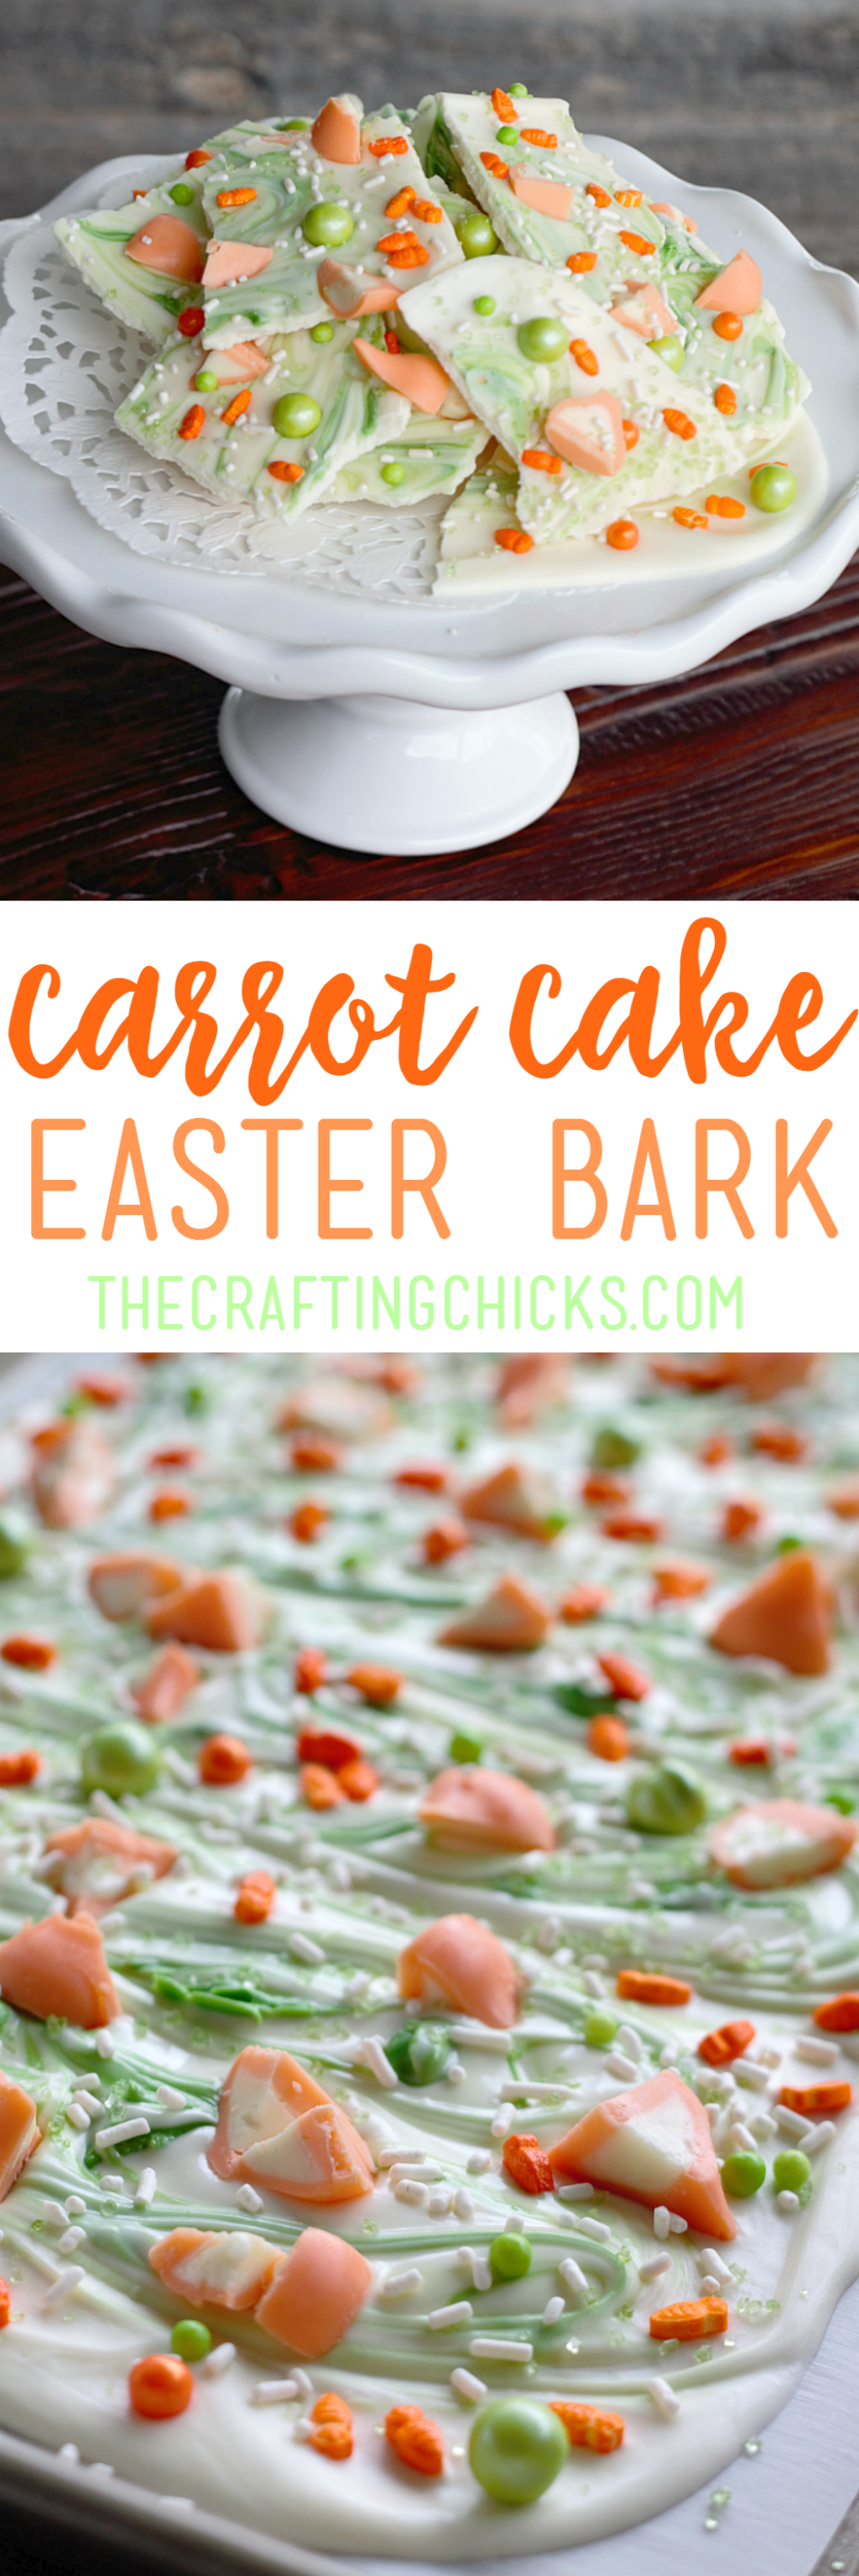 Carrot Cake Easter Bark is an easy, no-bake Easter dessert that is perfect to make with the kids!